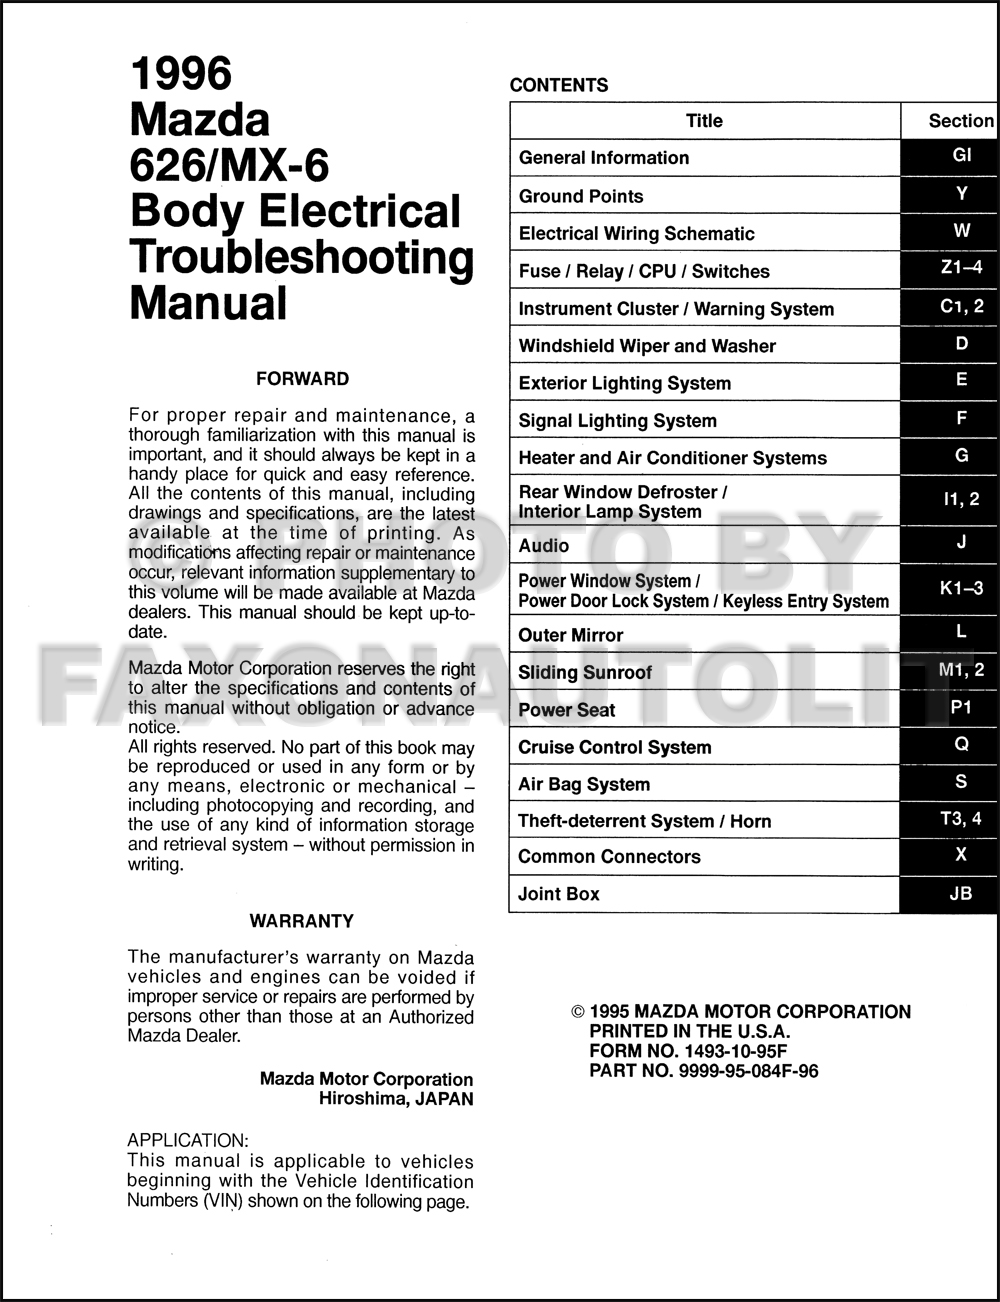 1996 mazda 626 abd mx 6 body electrical troubleshooting manual original 1996 ford mustang wiring diagram click on thumbnail to zoom